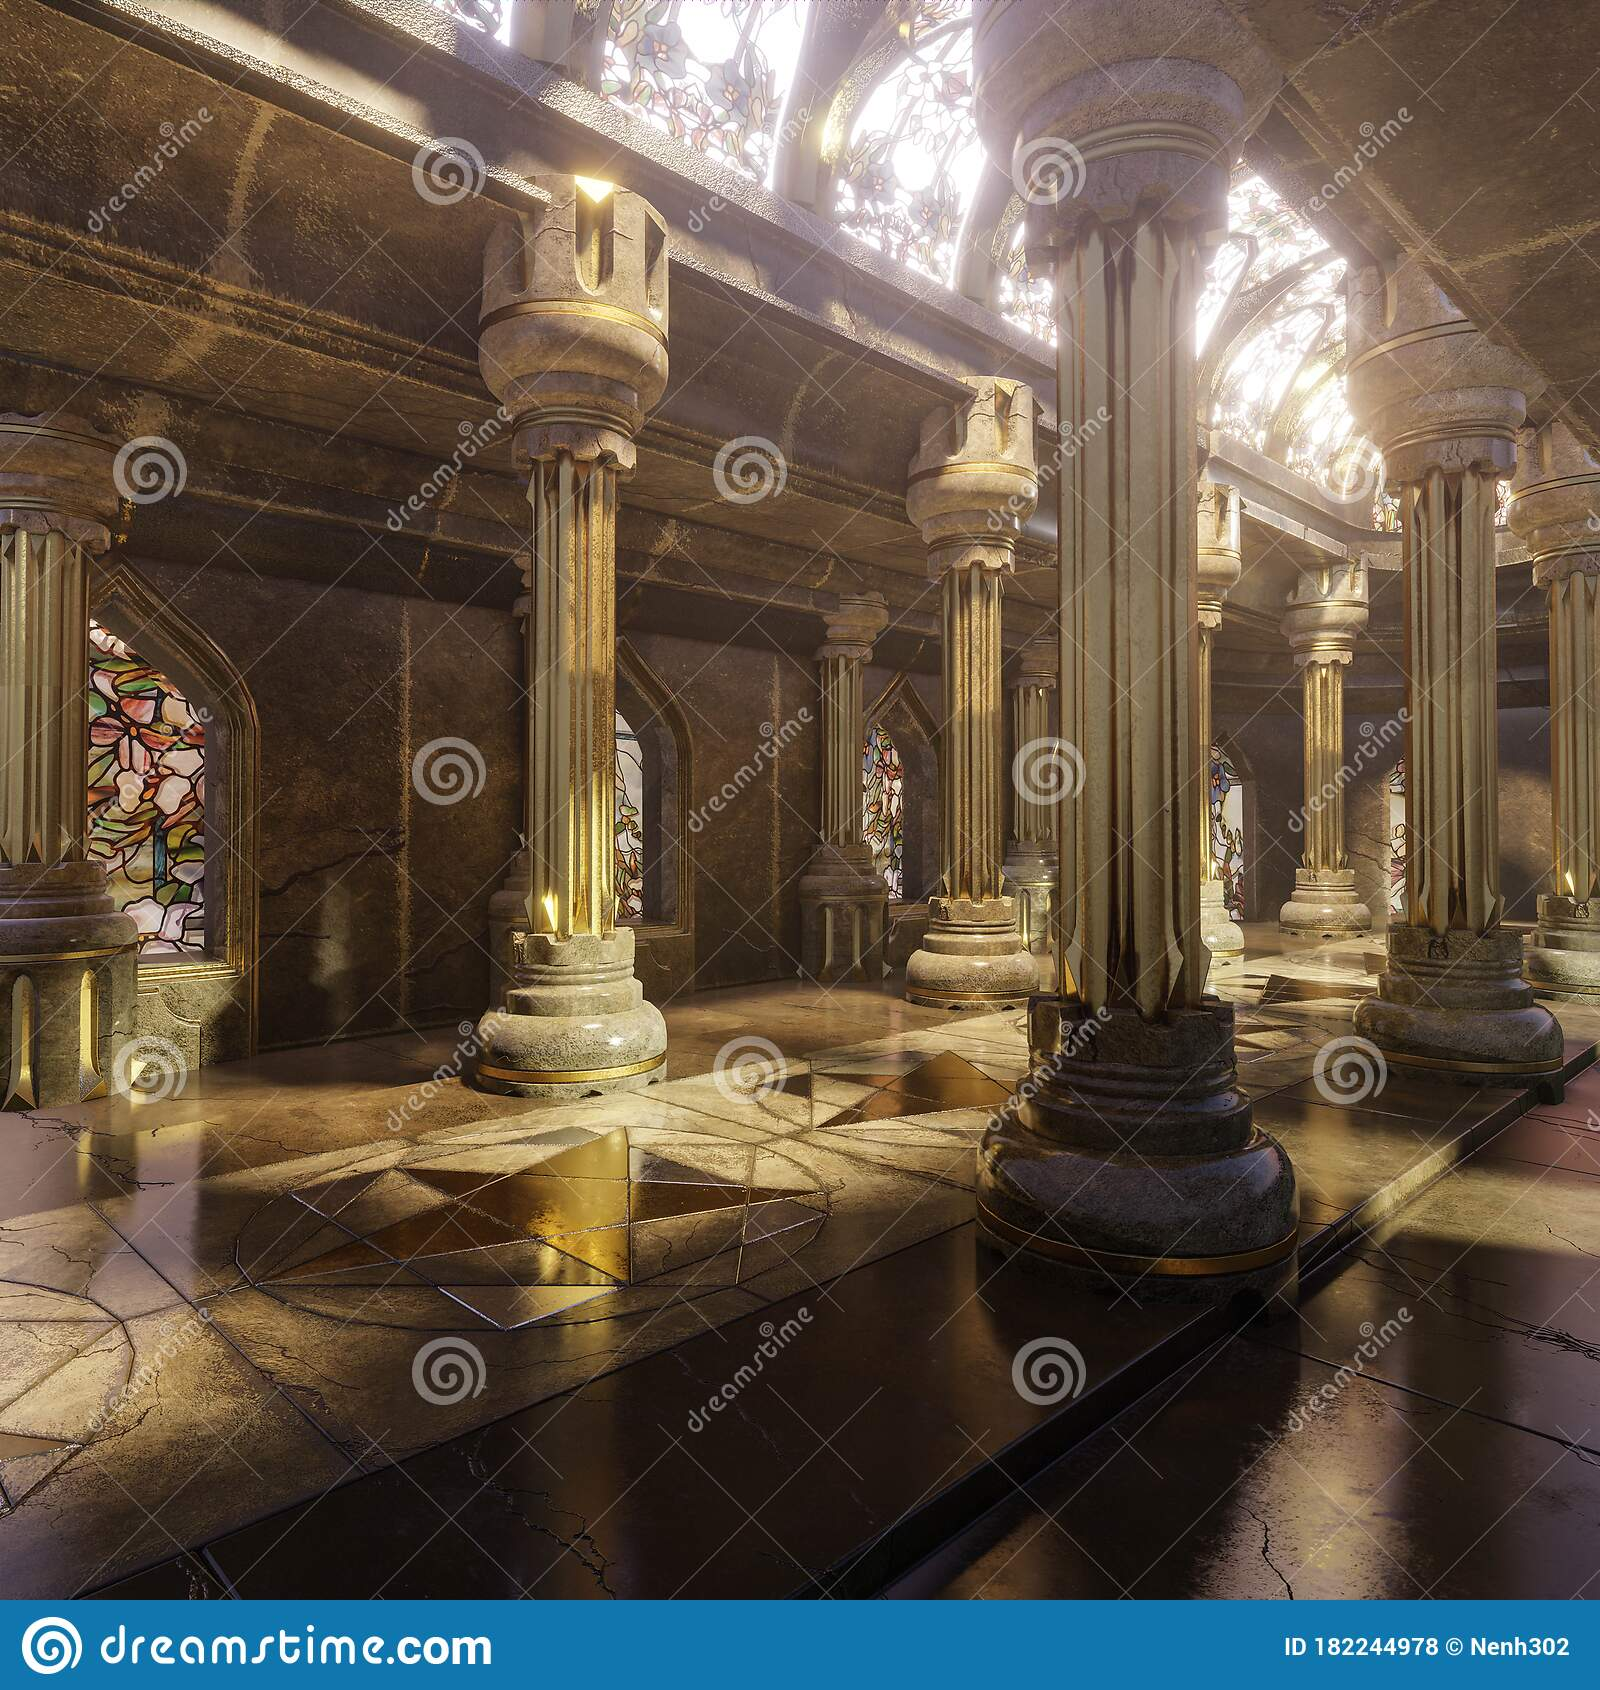 Fantasy Temple Interior With Majestic Pillars And Arches Stock Illustration - Illustration of